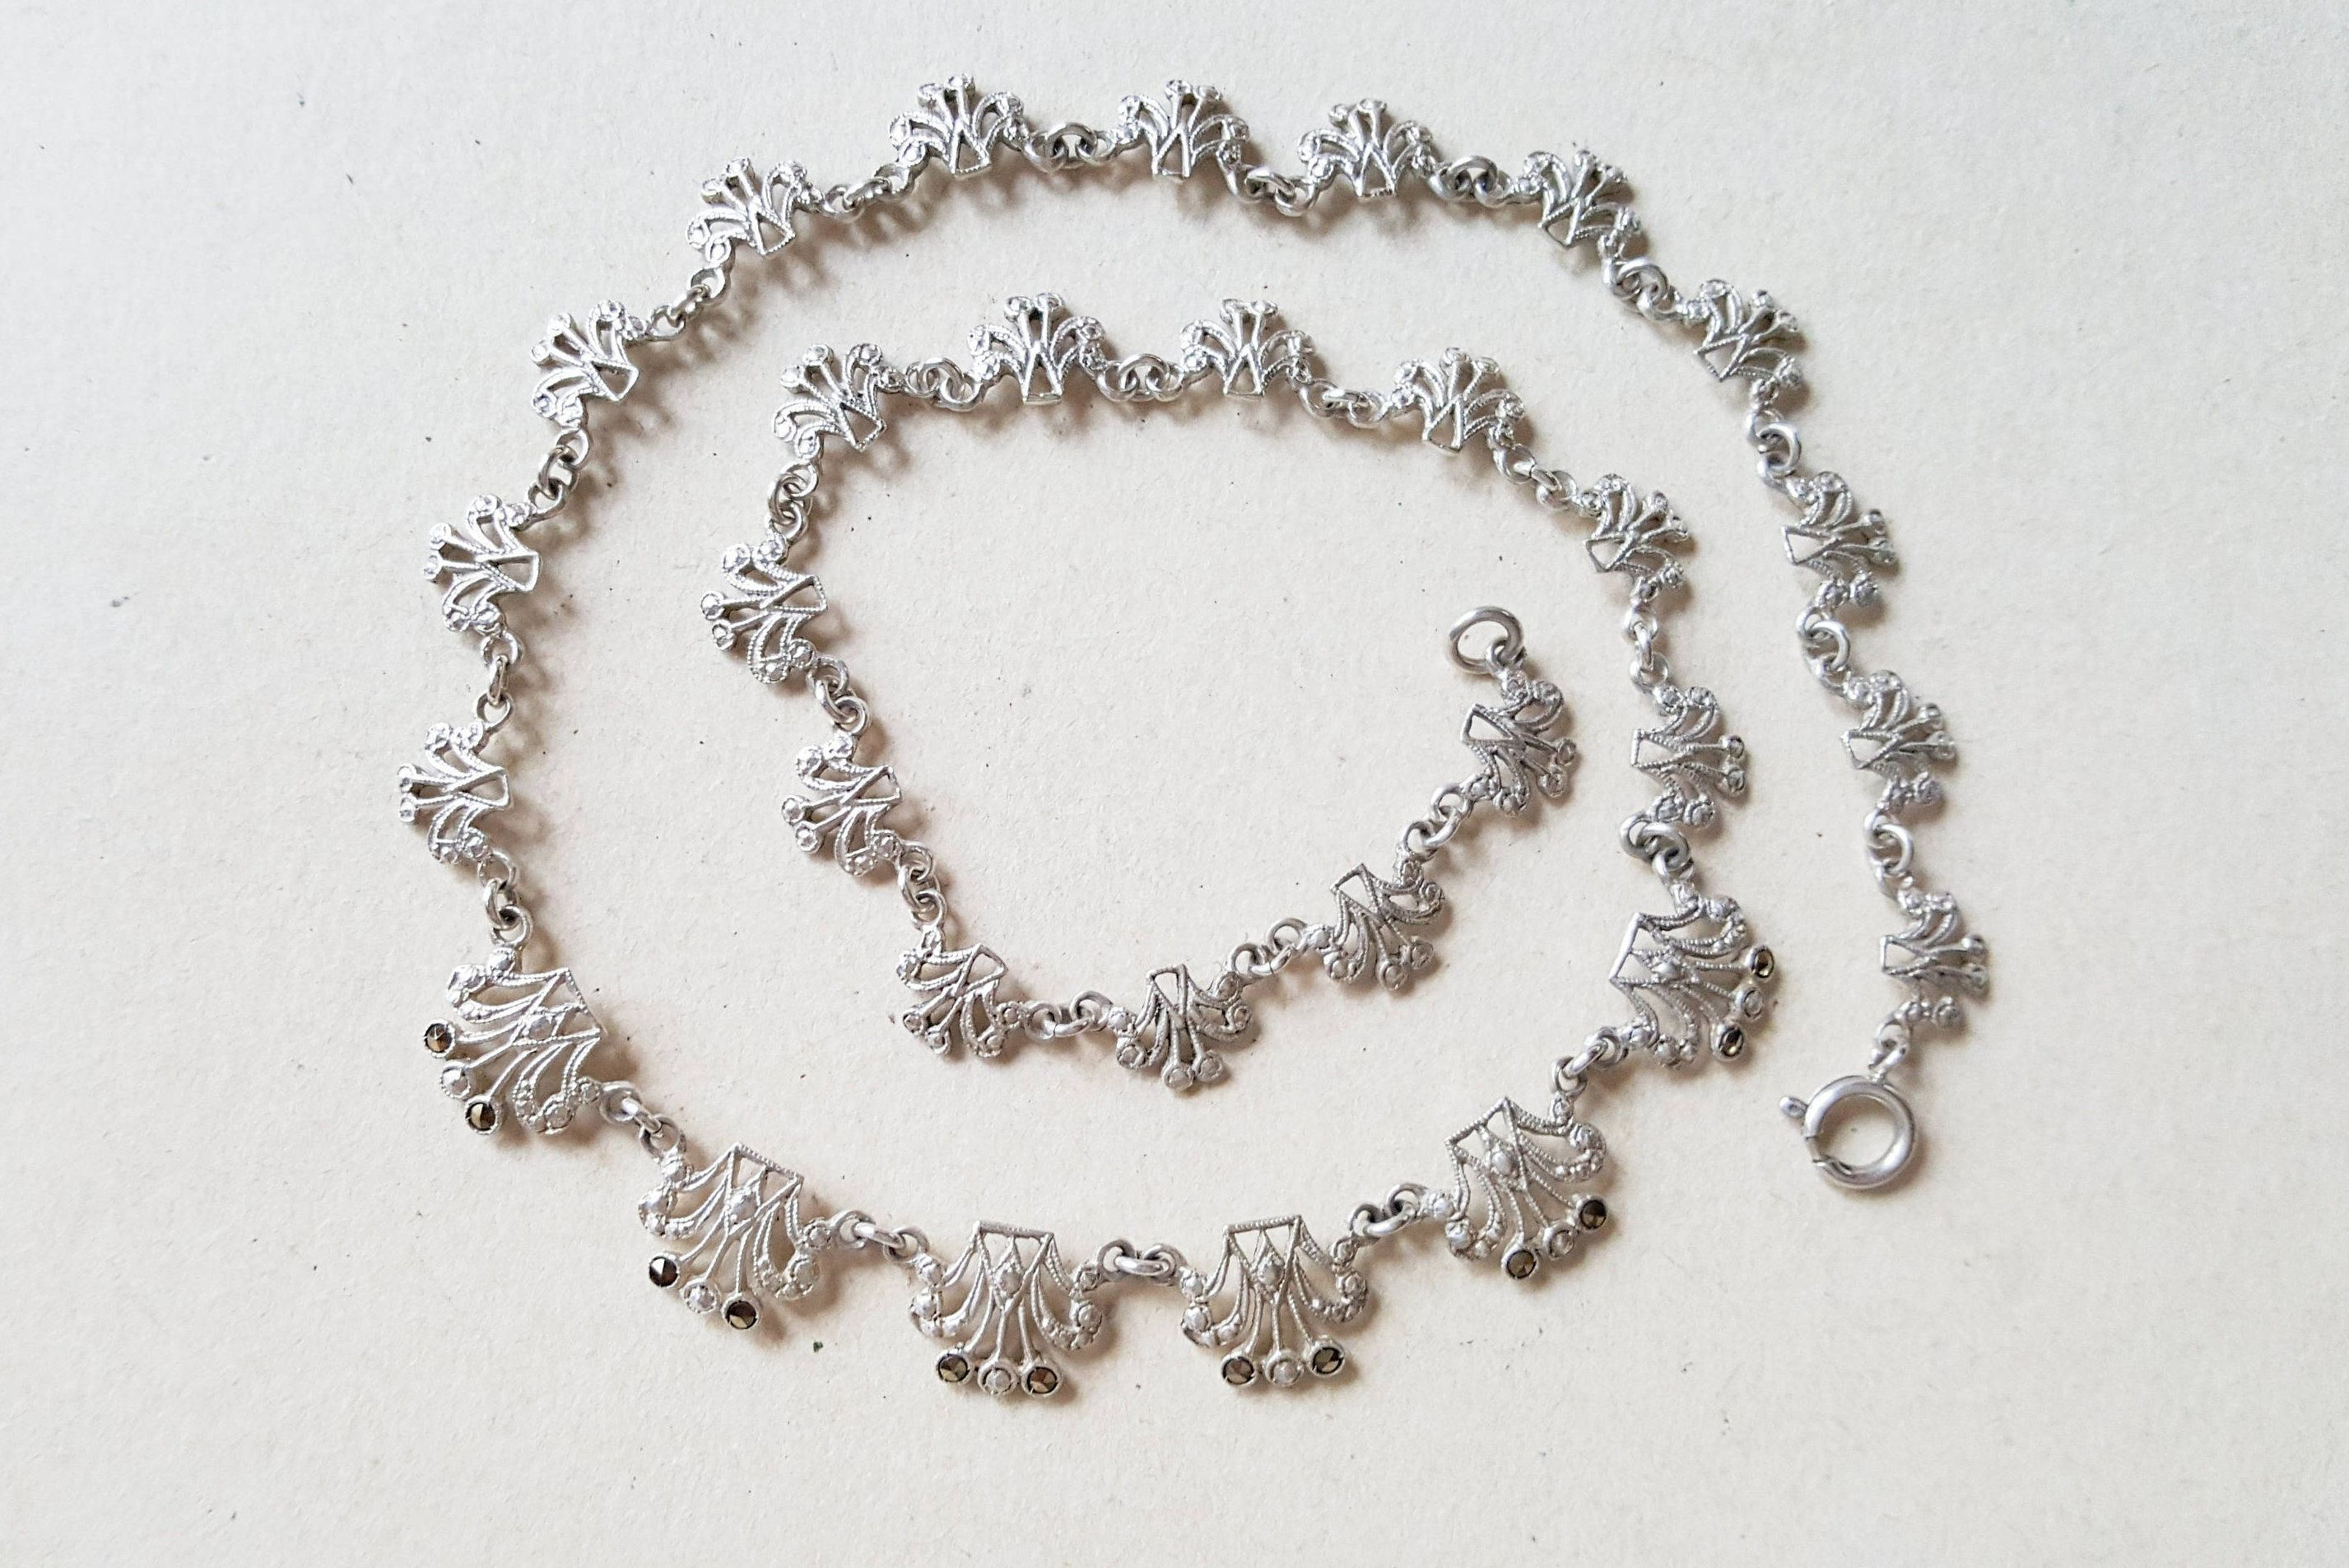 Vintage Silver And Marcasite Collier Necklace, Scandinavia, 1950s Regarding Recent Vintage Circle Collier Necklaces (View 5 of 25)